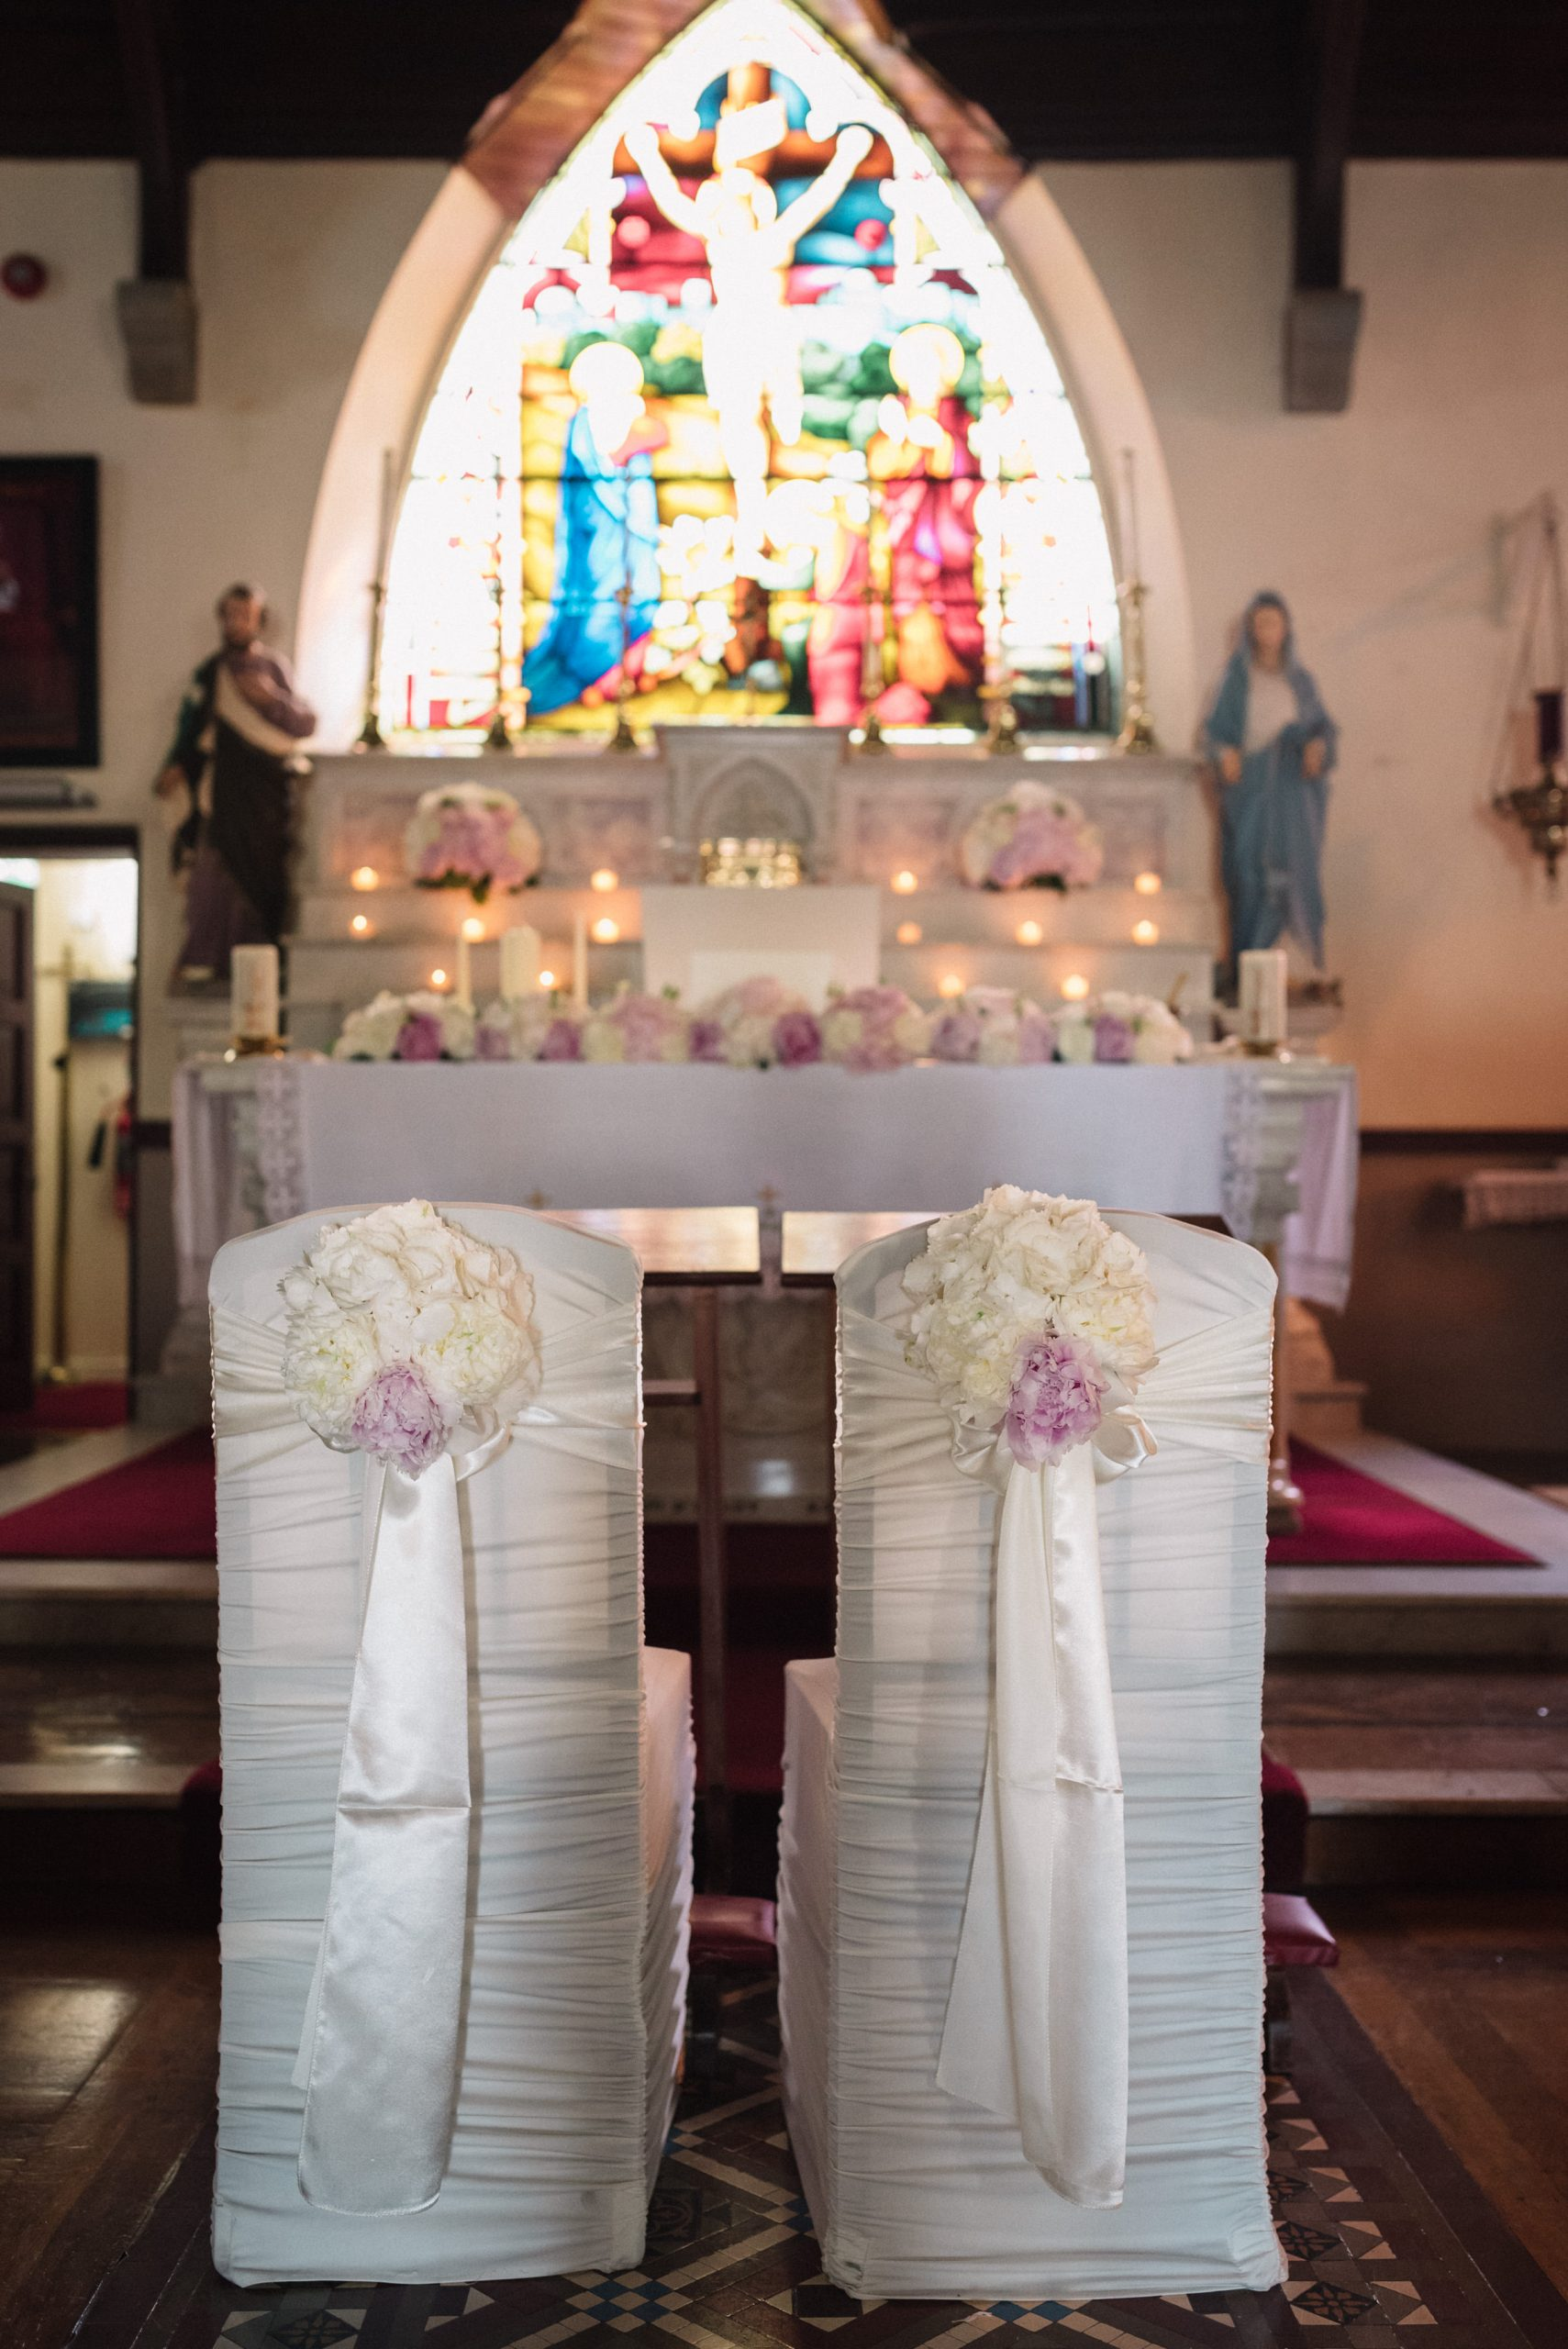 Wedding decorations - bride and groom chairs and alter arrangements